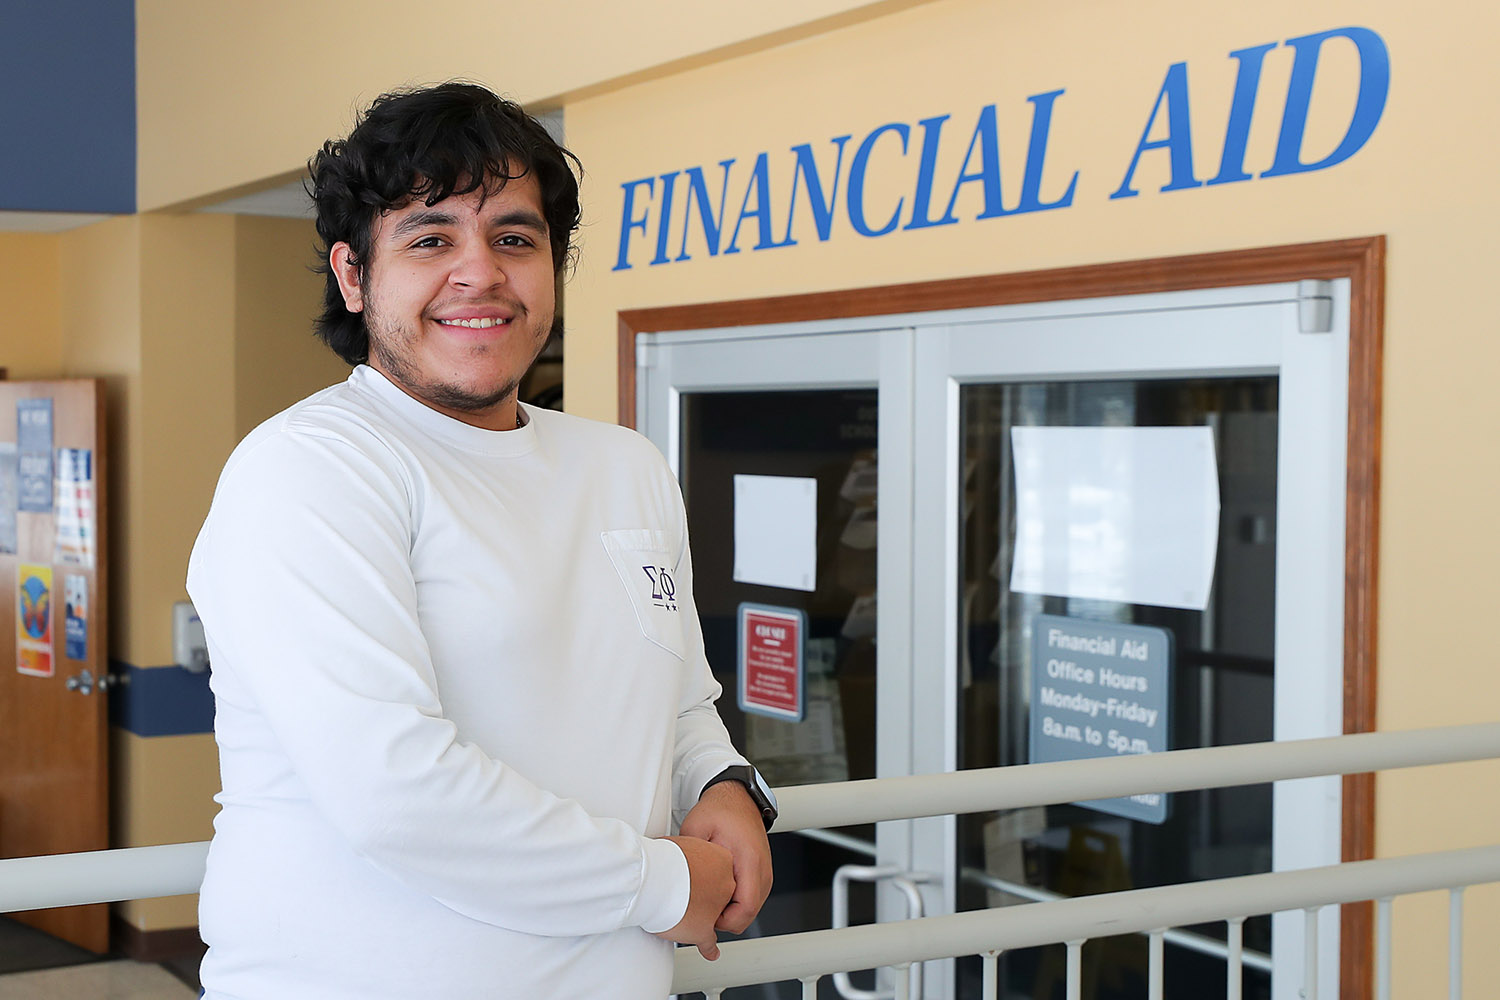 """""""The help I received from the Financial Aid team is the reason I will be graduating this May,"""" says Agustin Ruvalcaba, who is studying wildlife biology at UNK."""